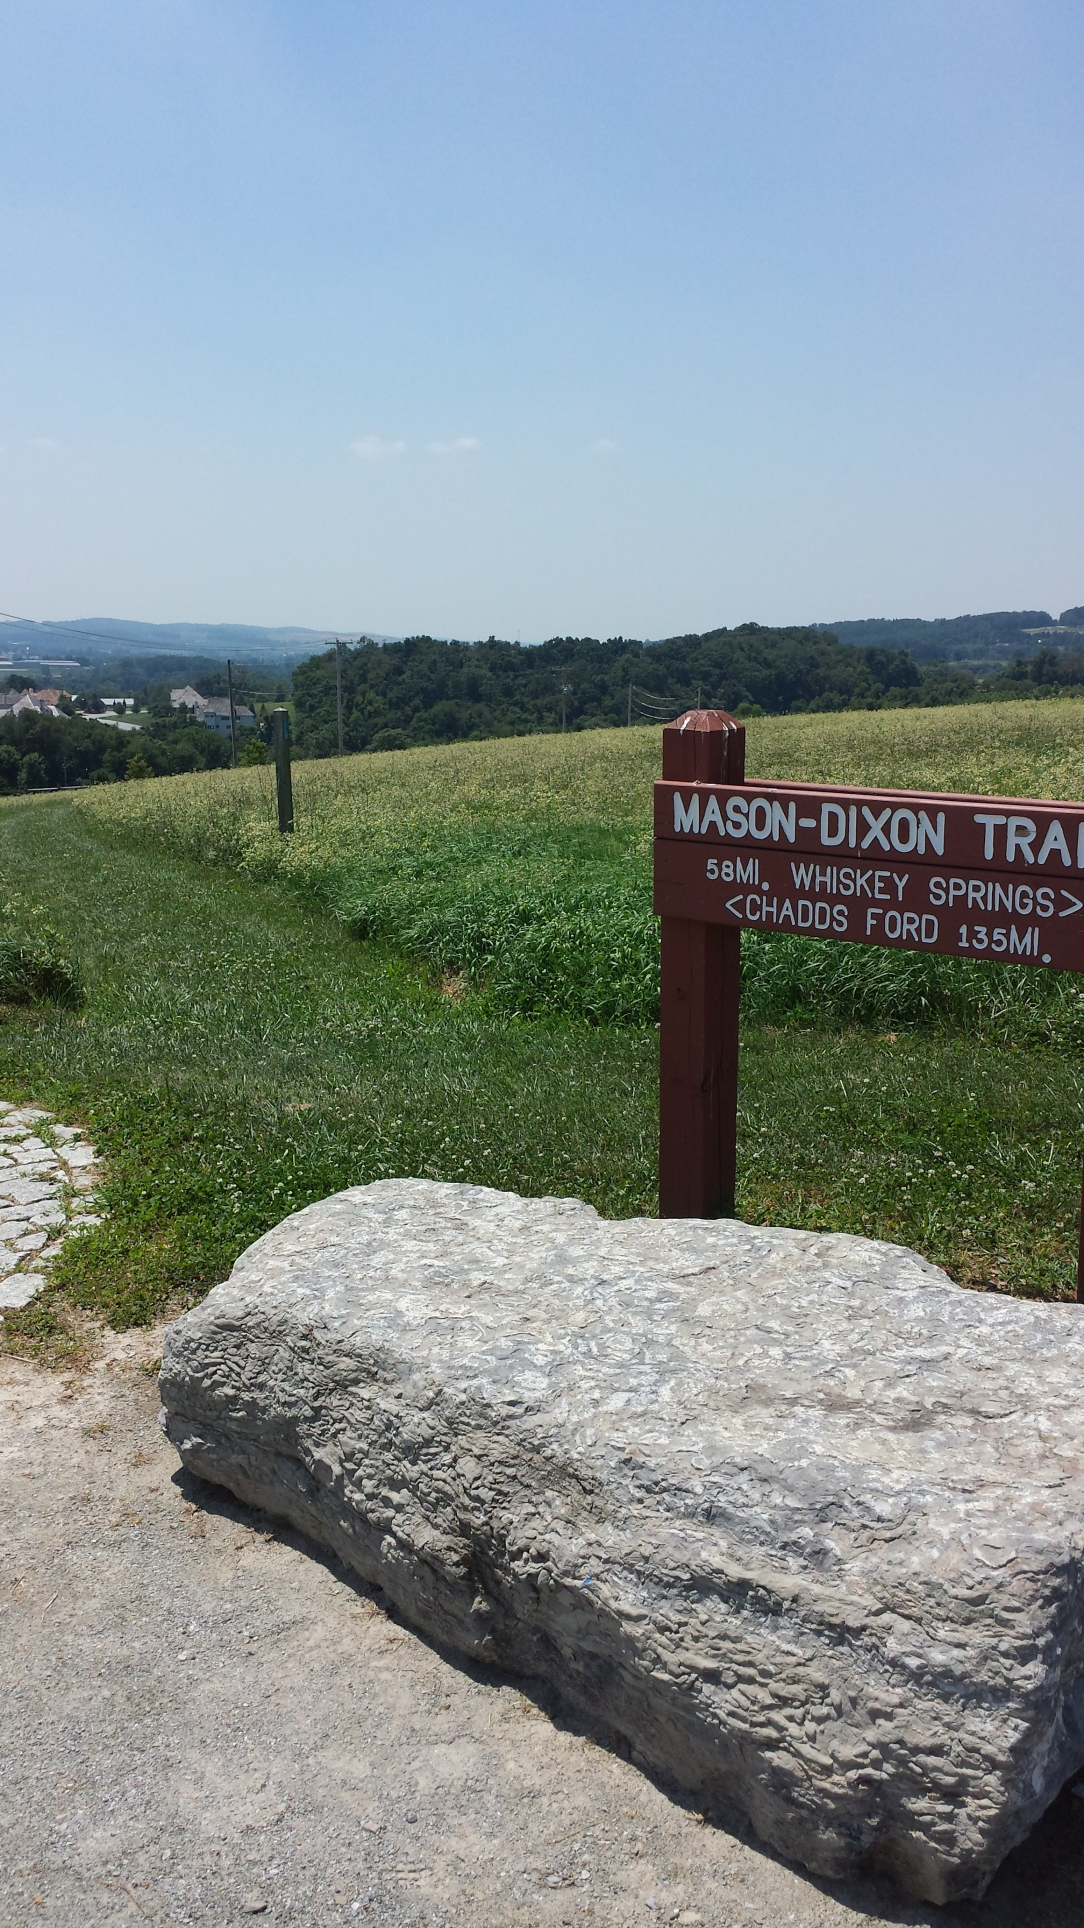 The Mason Dixon trail runs through this park.  As you could see by this sign, it's a long haul.  I personally wouldn't want to go from York County to Chadd's Ford on foot.